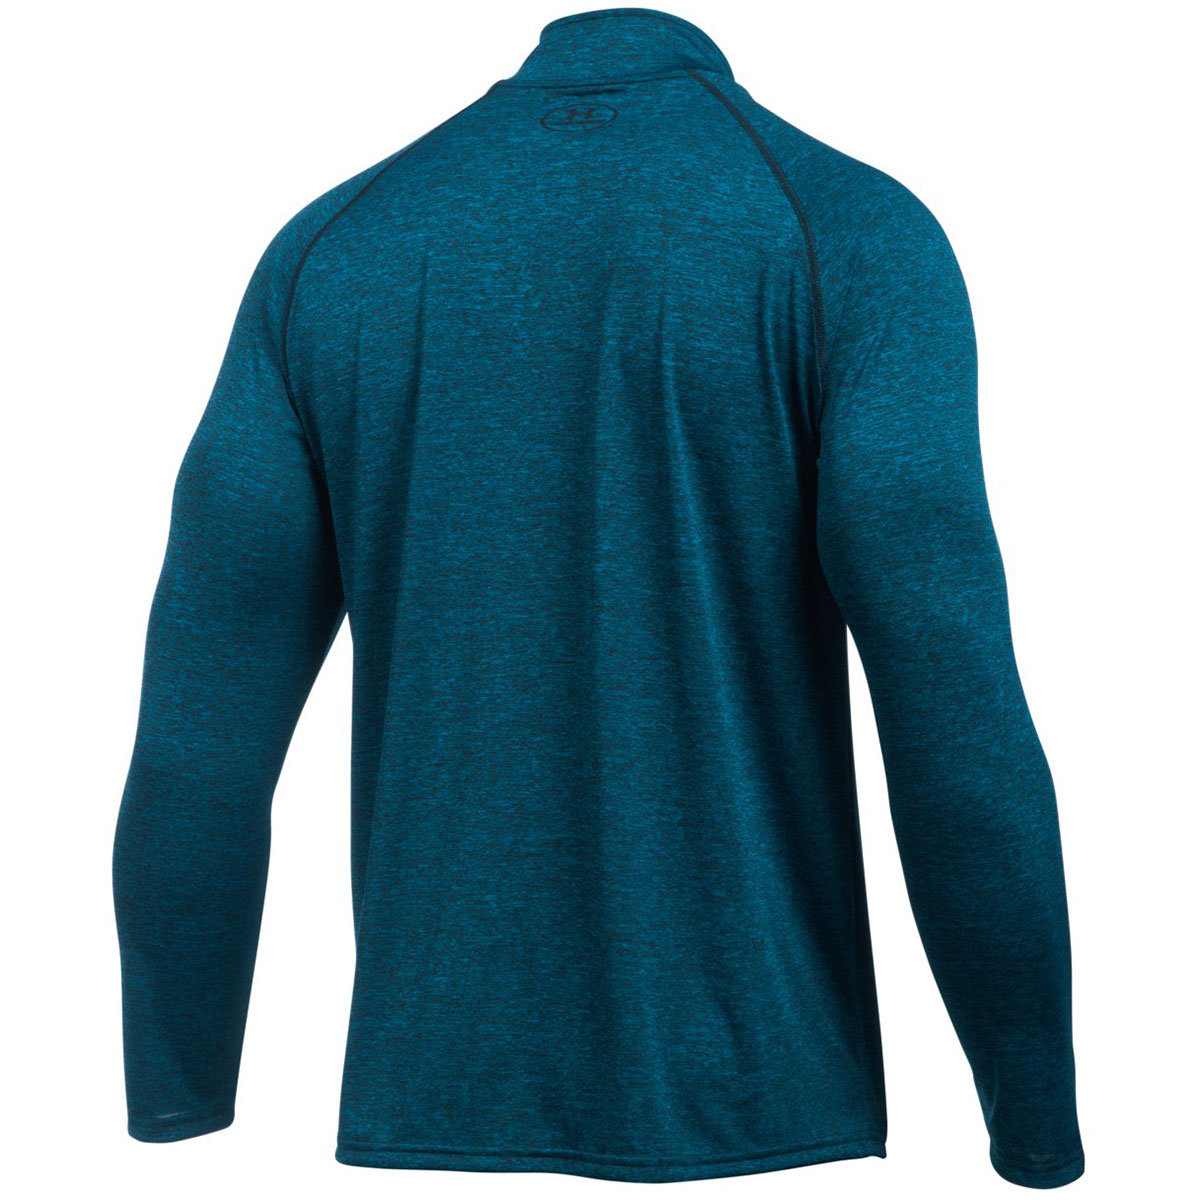 Under-Armour-Mens-UA-Tech-1-4-Zip-Long-Sleeve-Top-Workout-Layer-27-OFF-RRP thumbnail 63